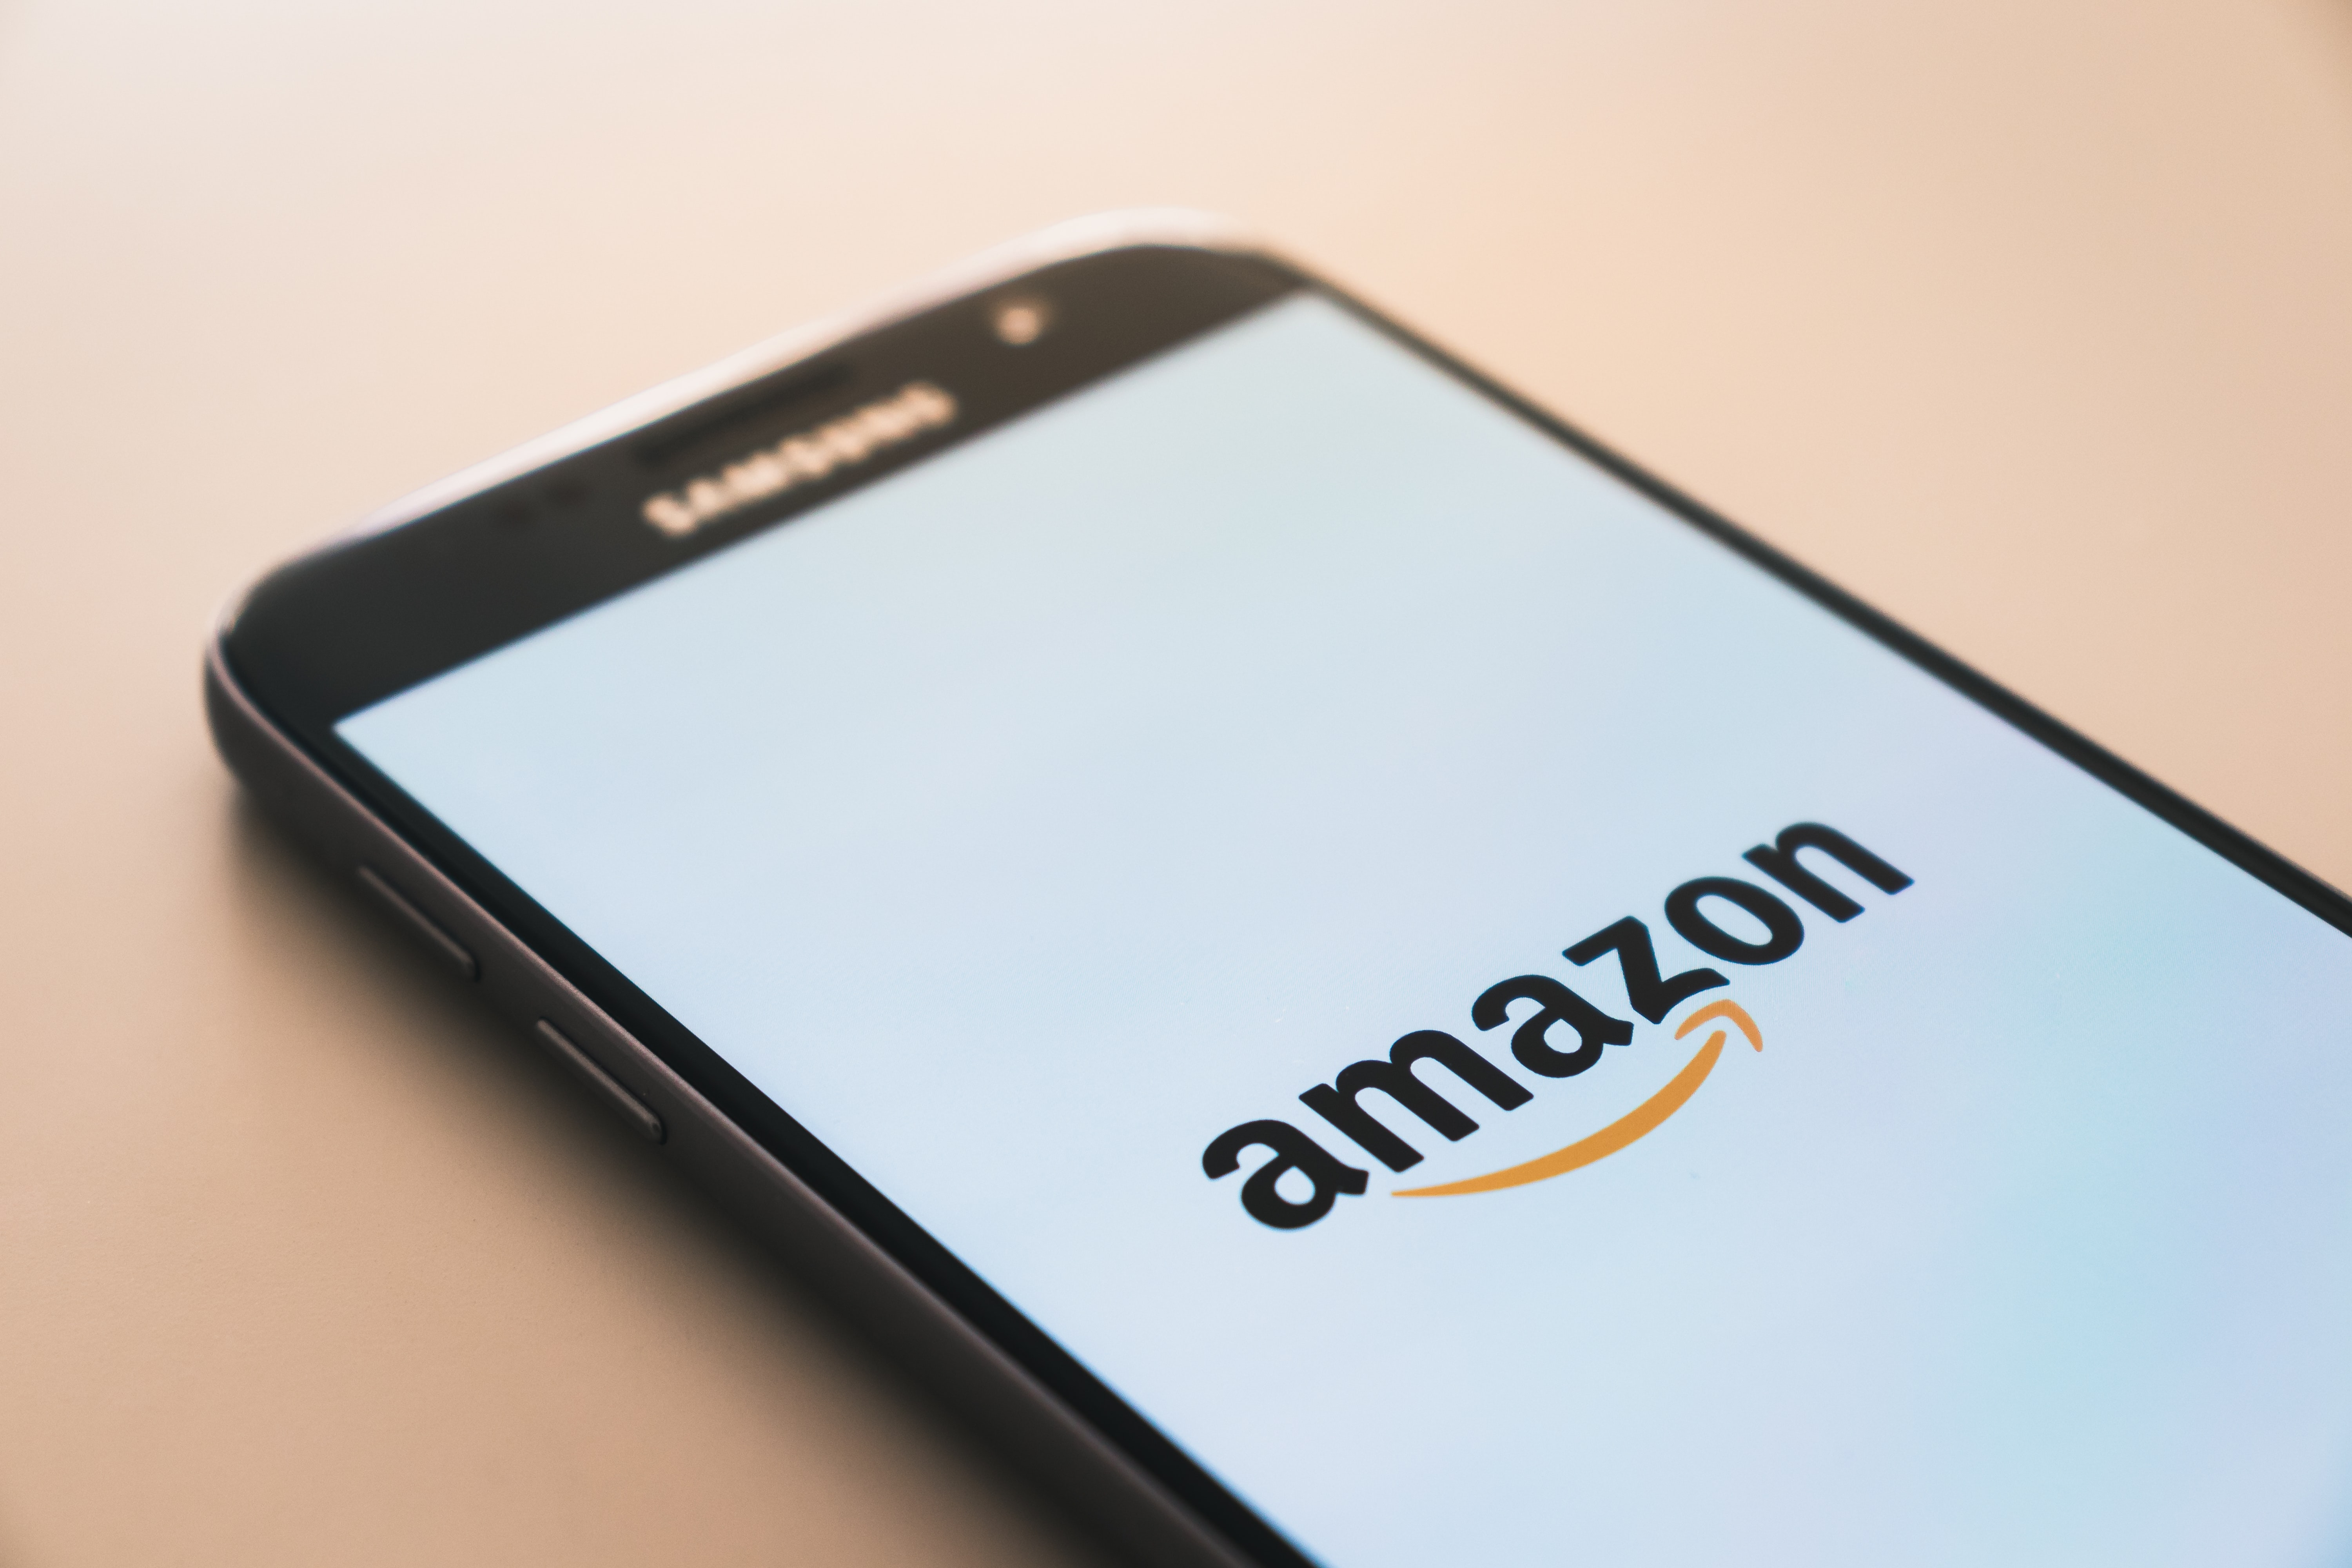 Save money every time on Amazon with this simple trick